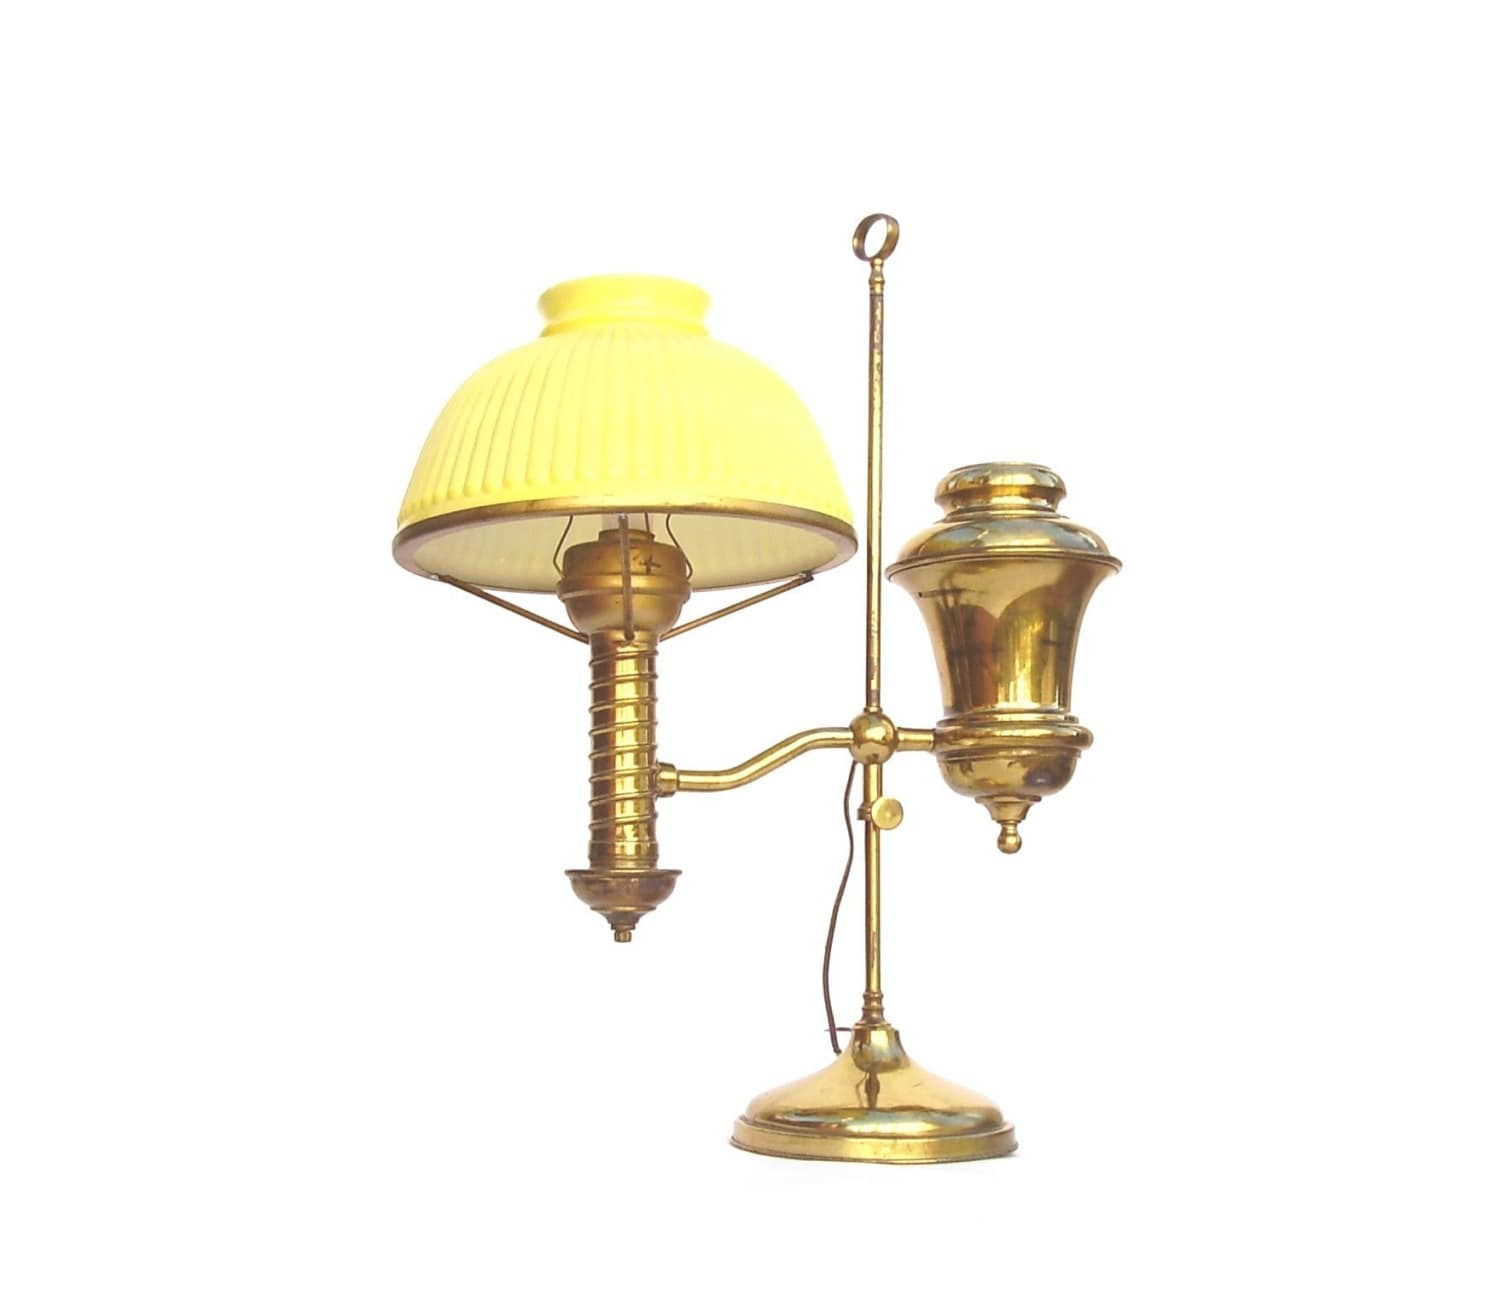 Balmoral Tall Pedestal Lantern Light Antique Brass: Antique Brass Lamps Student Lamp Vintage Electrified Oil